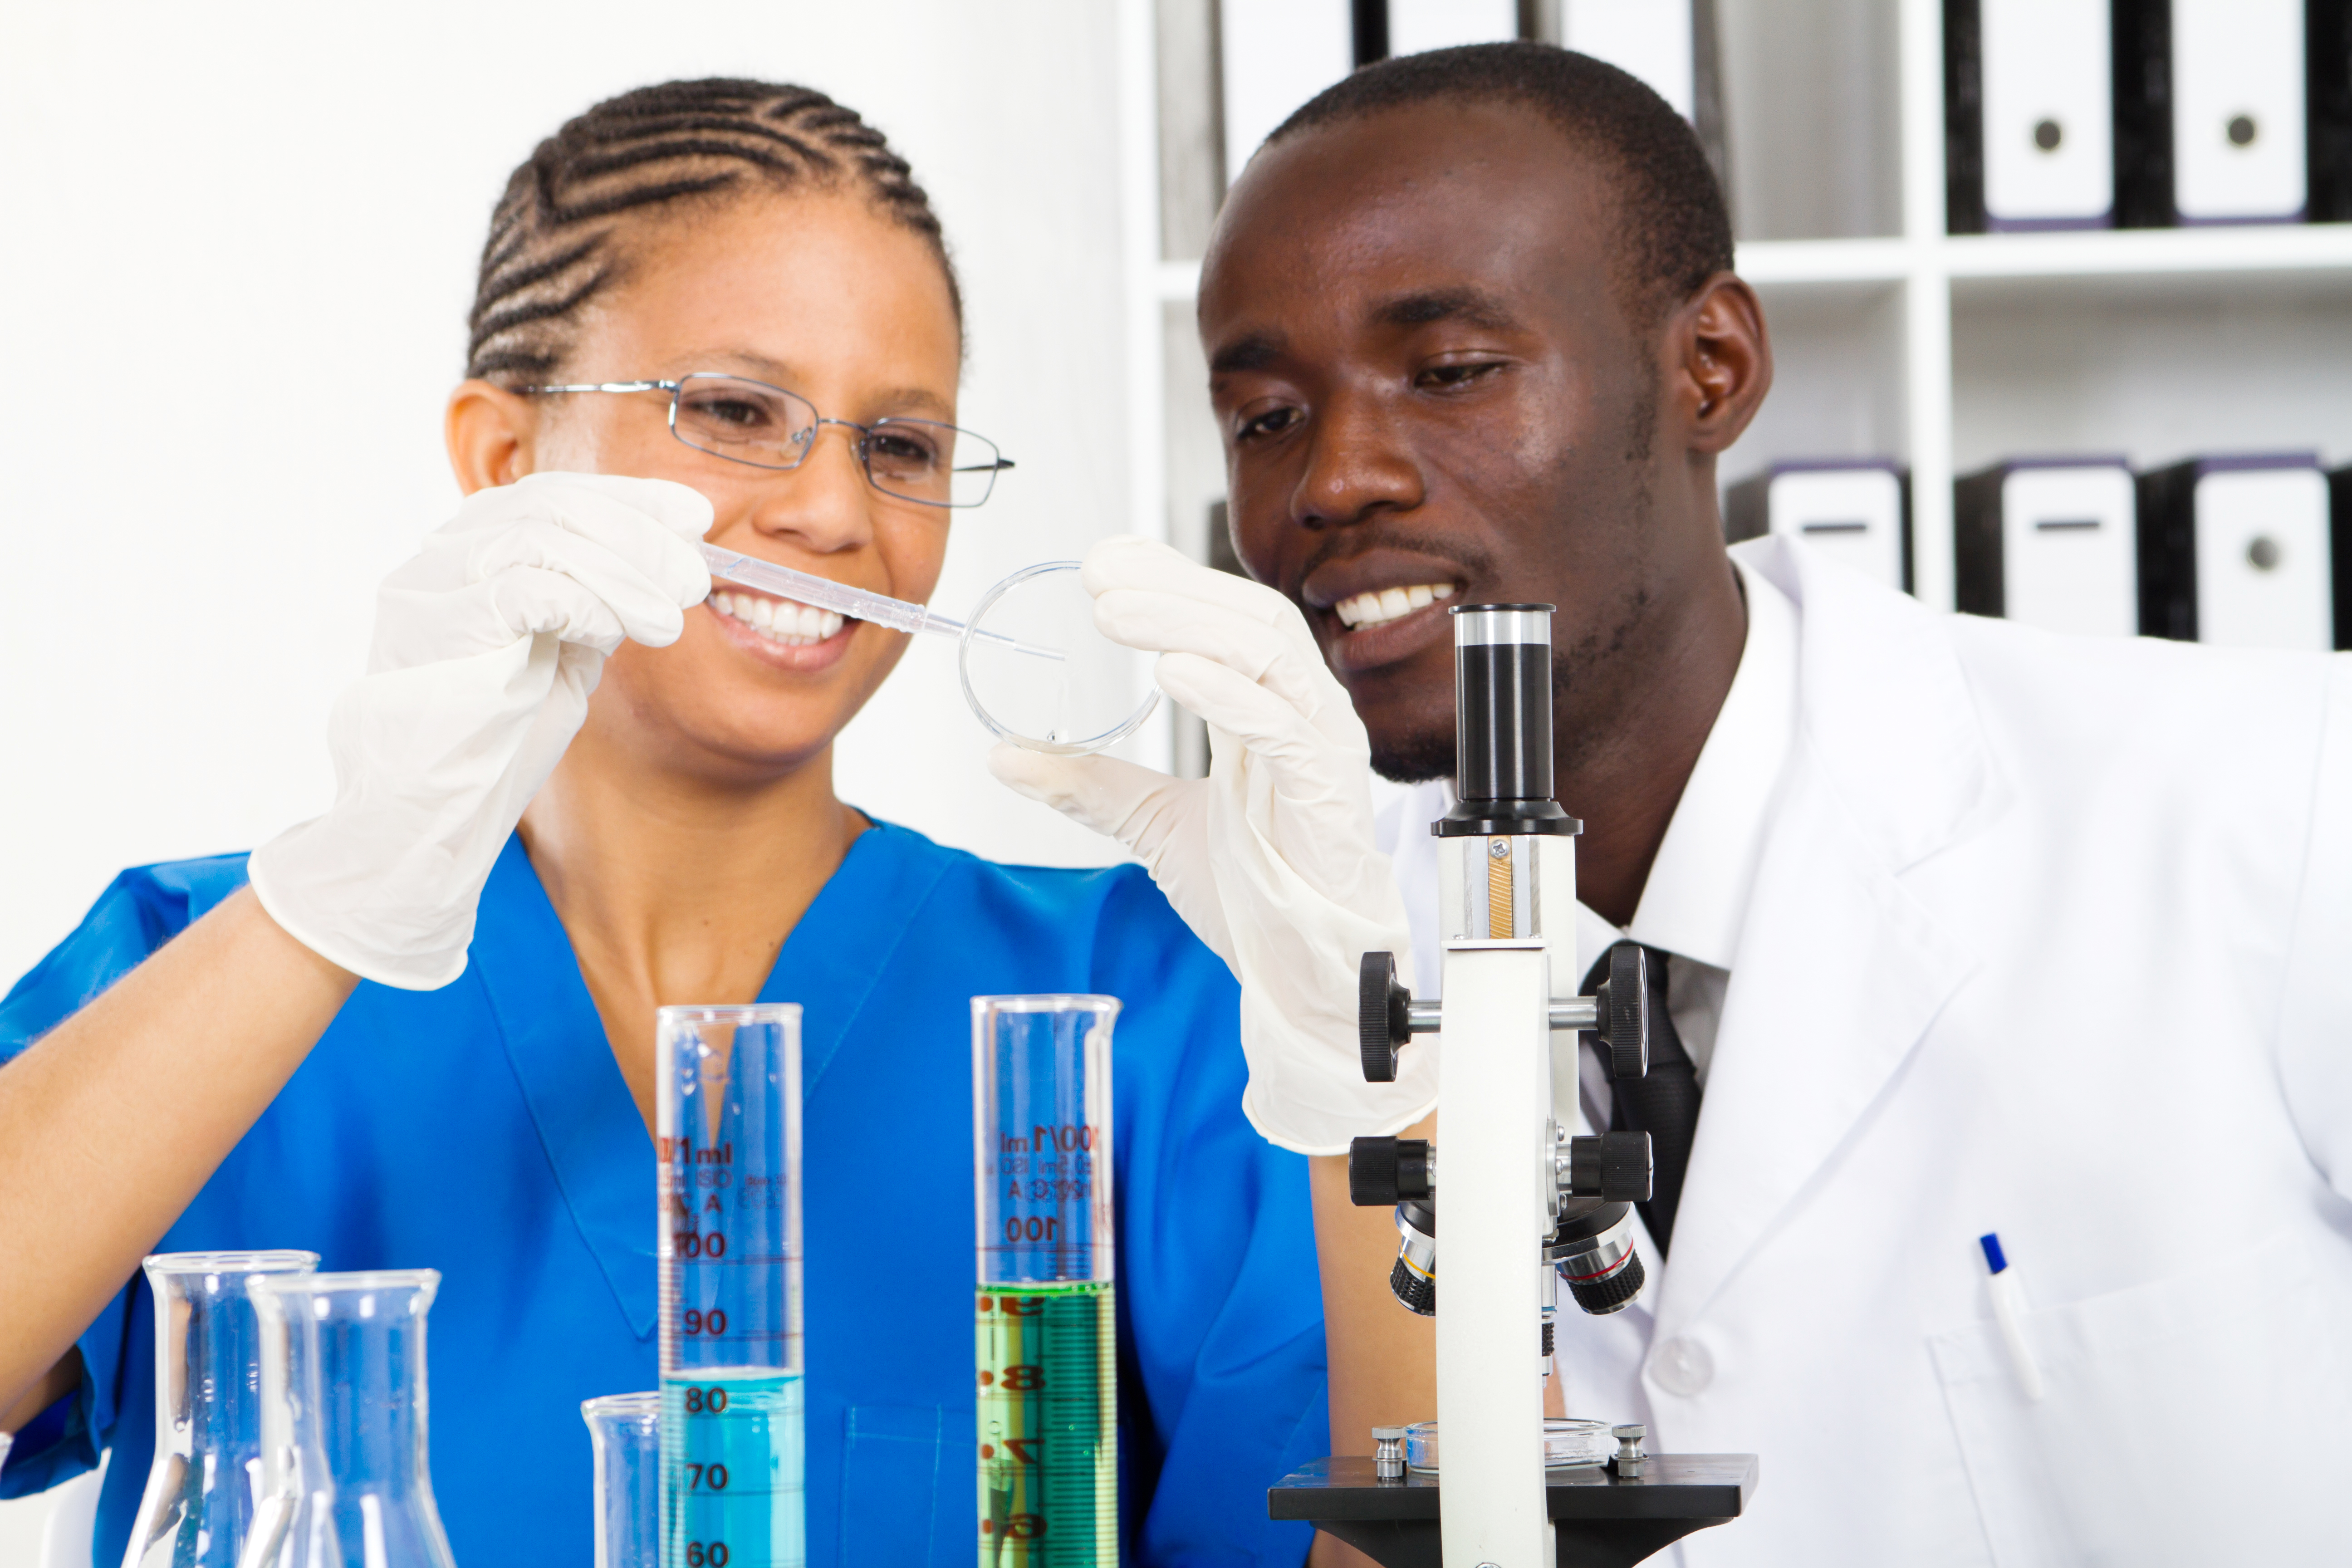 Close-up of two students in a science lab